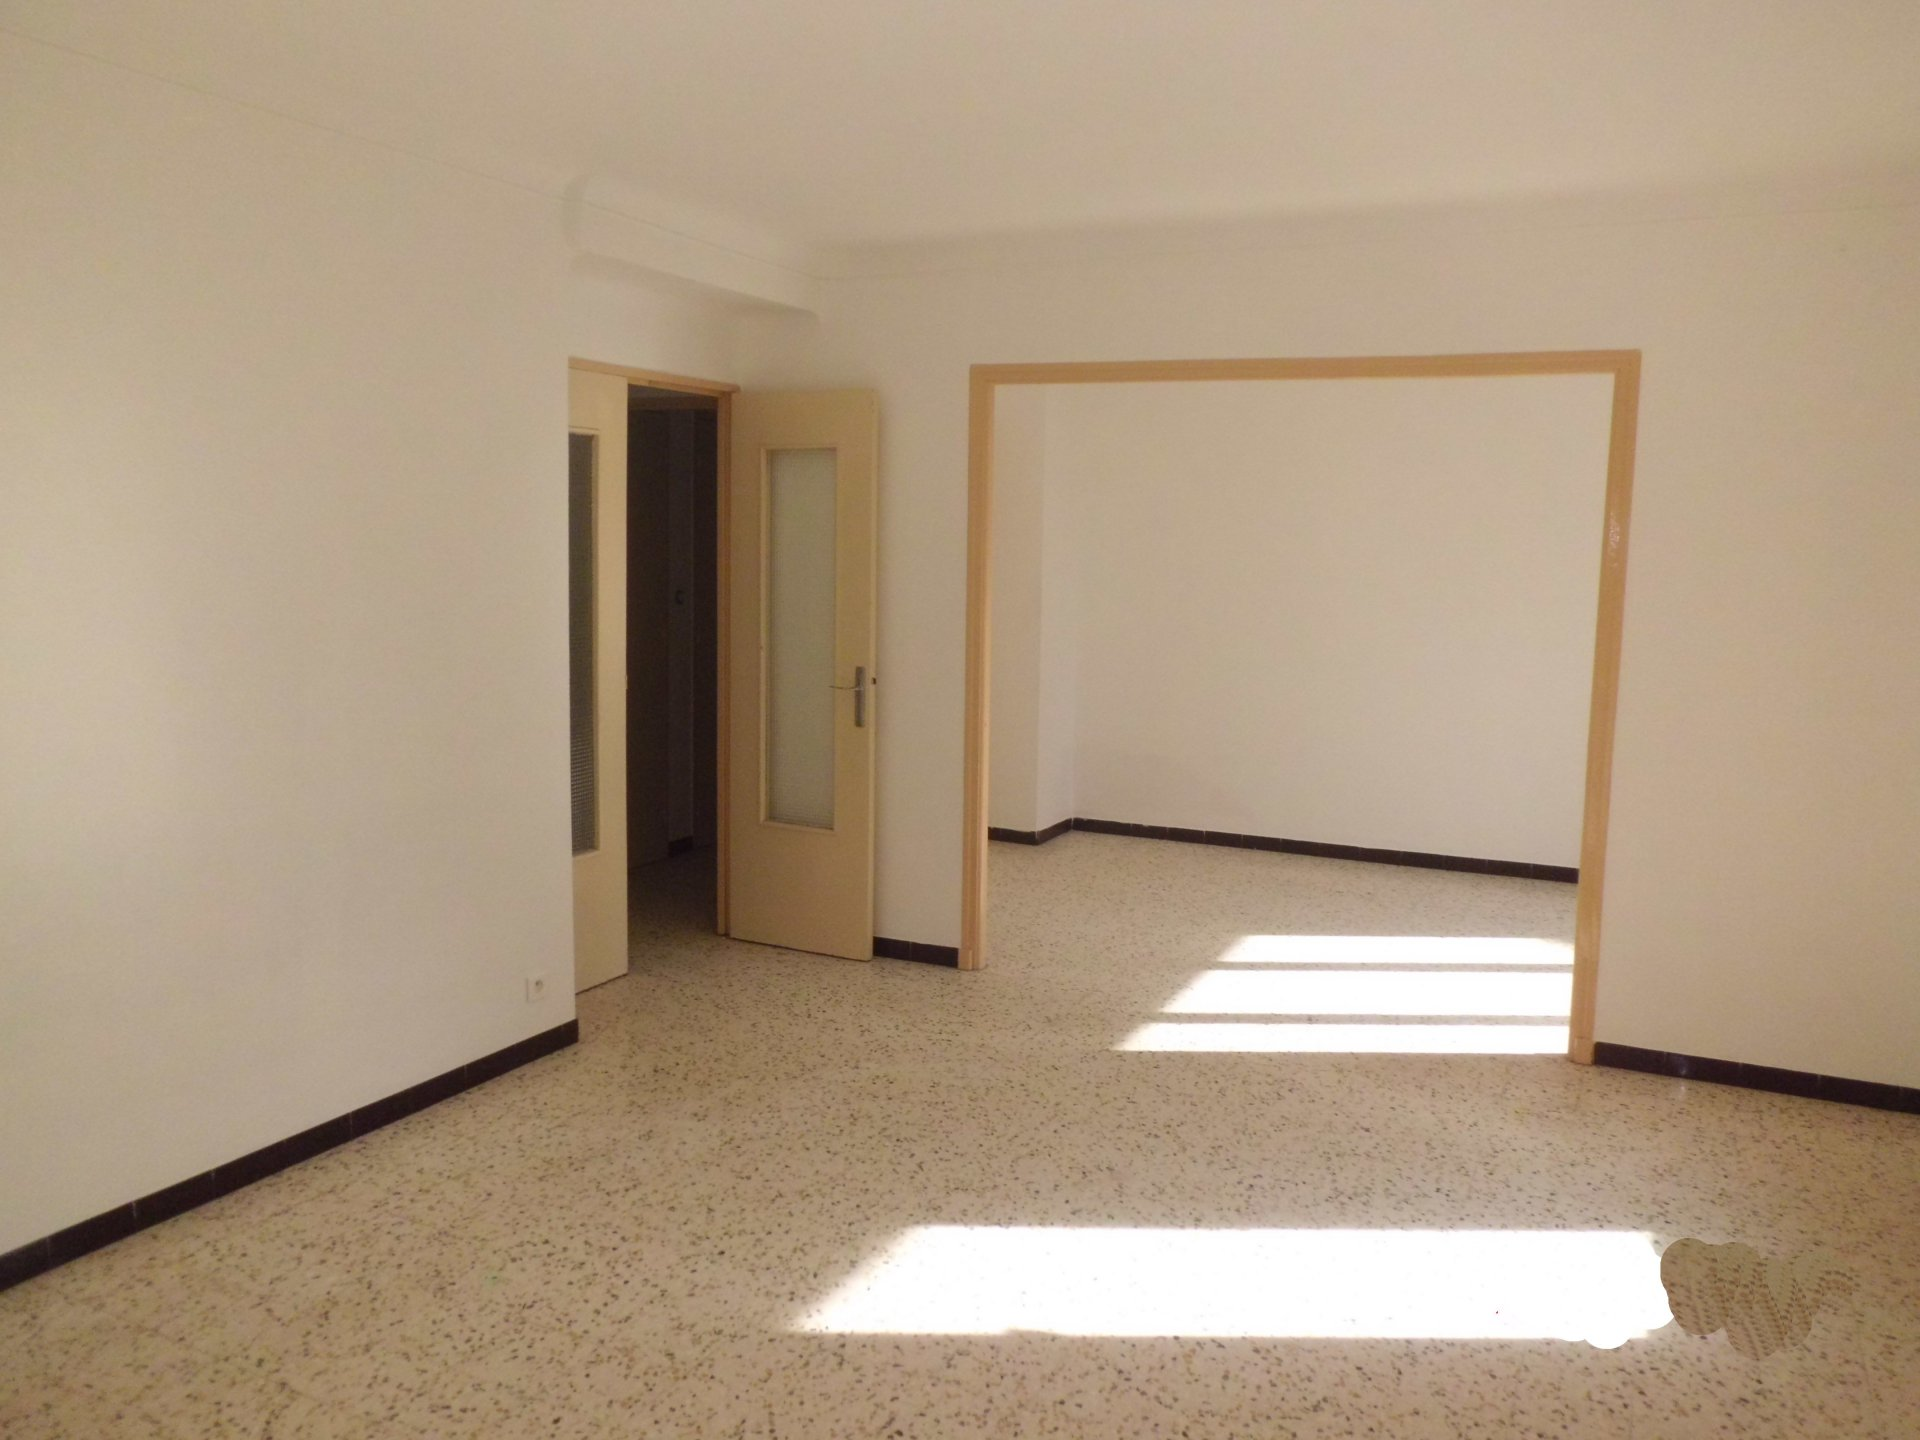 AVIGNON - RENTAL INVESTMENT Apartment 80 m² with balconies and parking space - currently rented